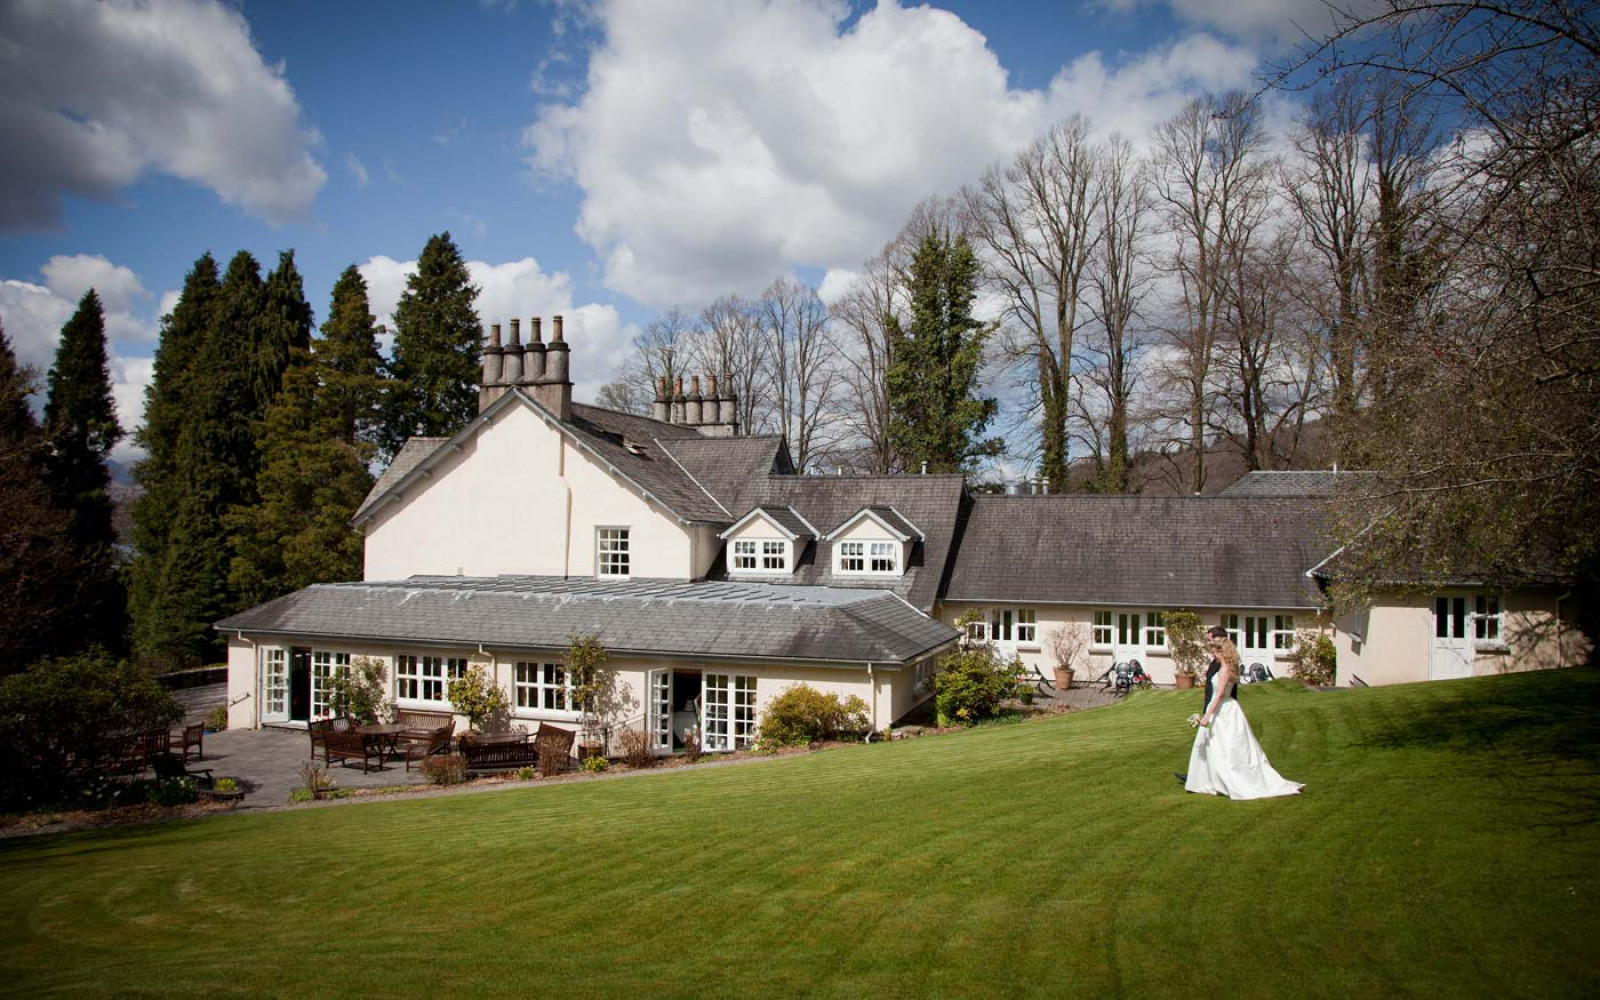 briery wood country house, cumbria wedding venue